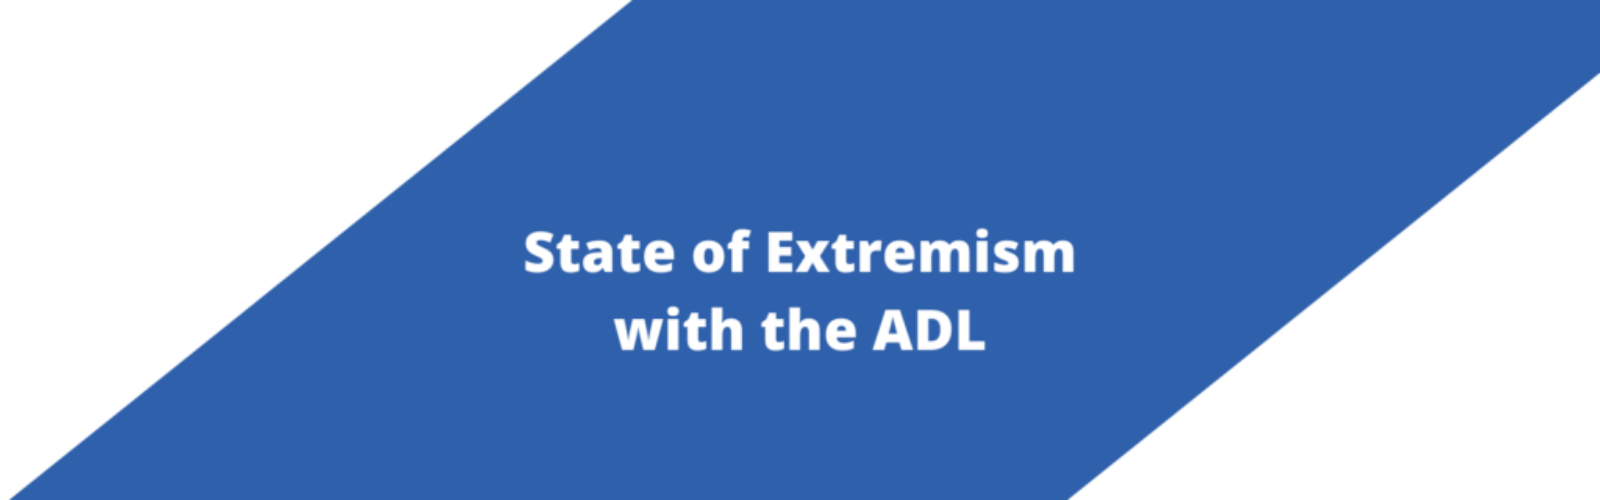 State of Extremism